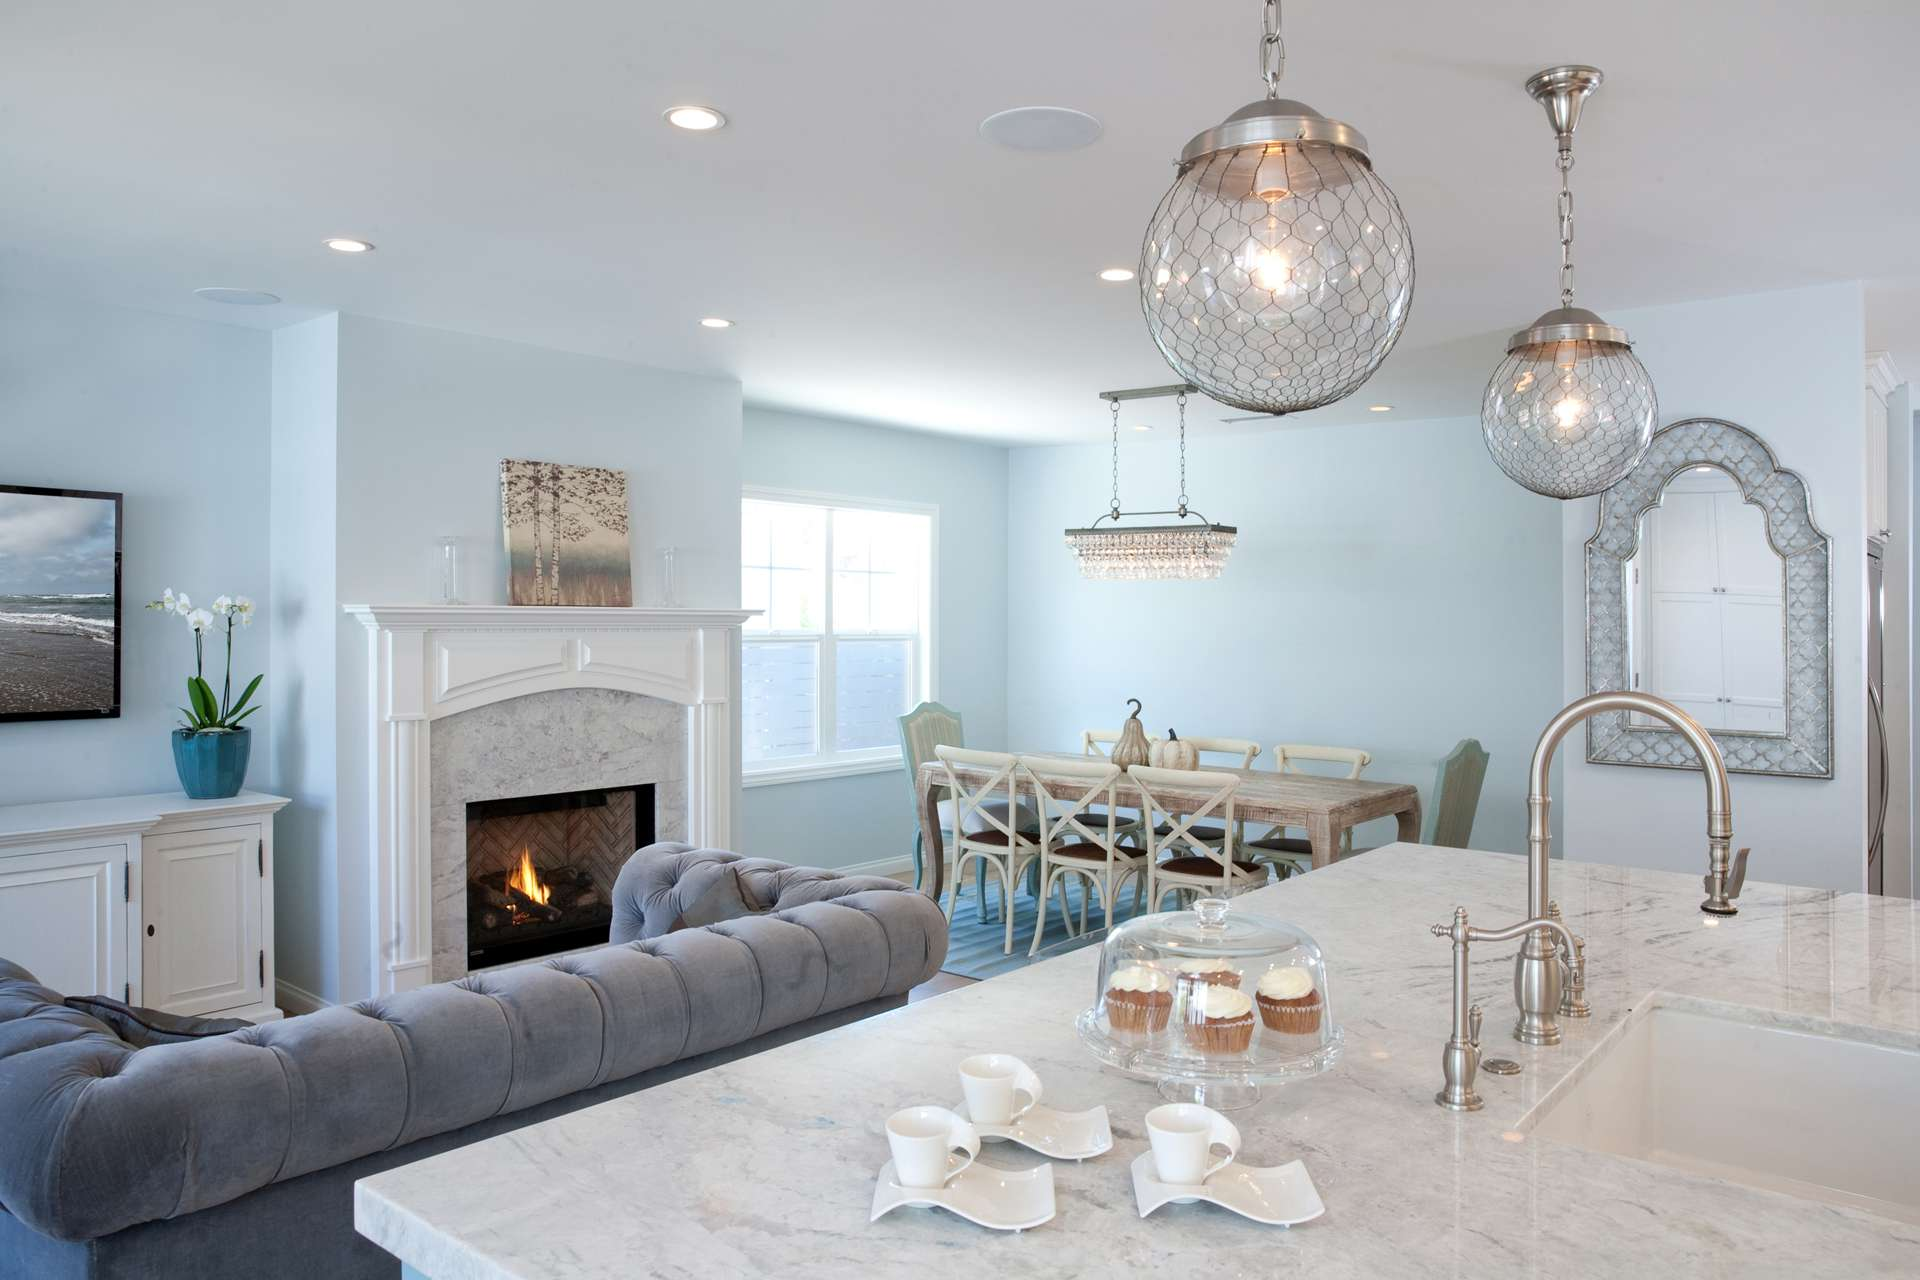 Marble fireplace matches kitchen counter top